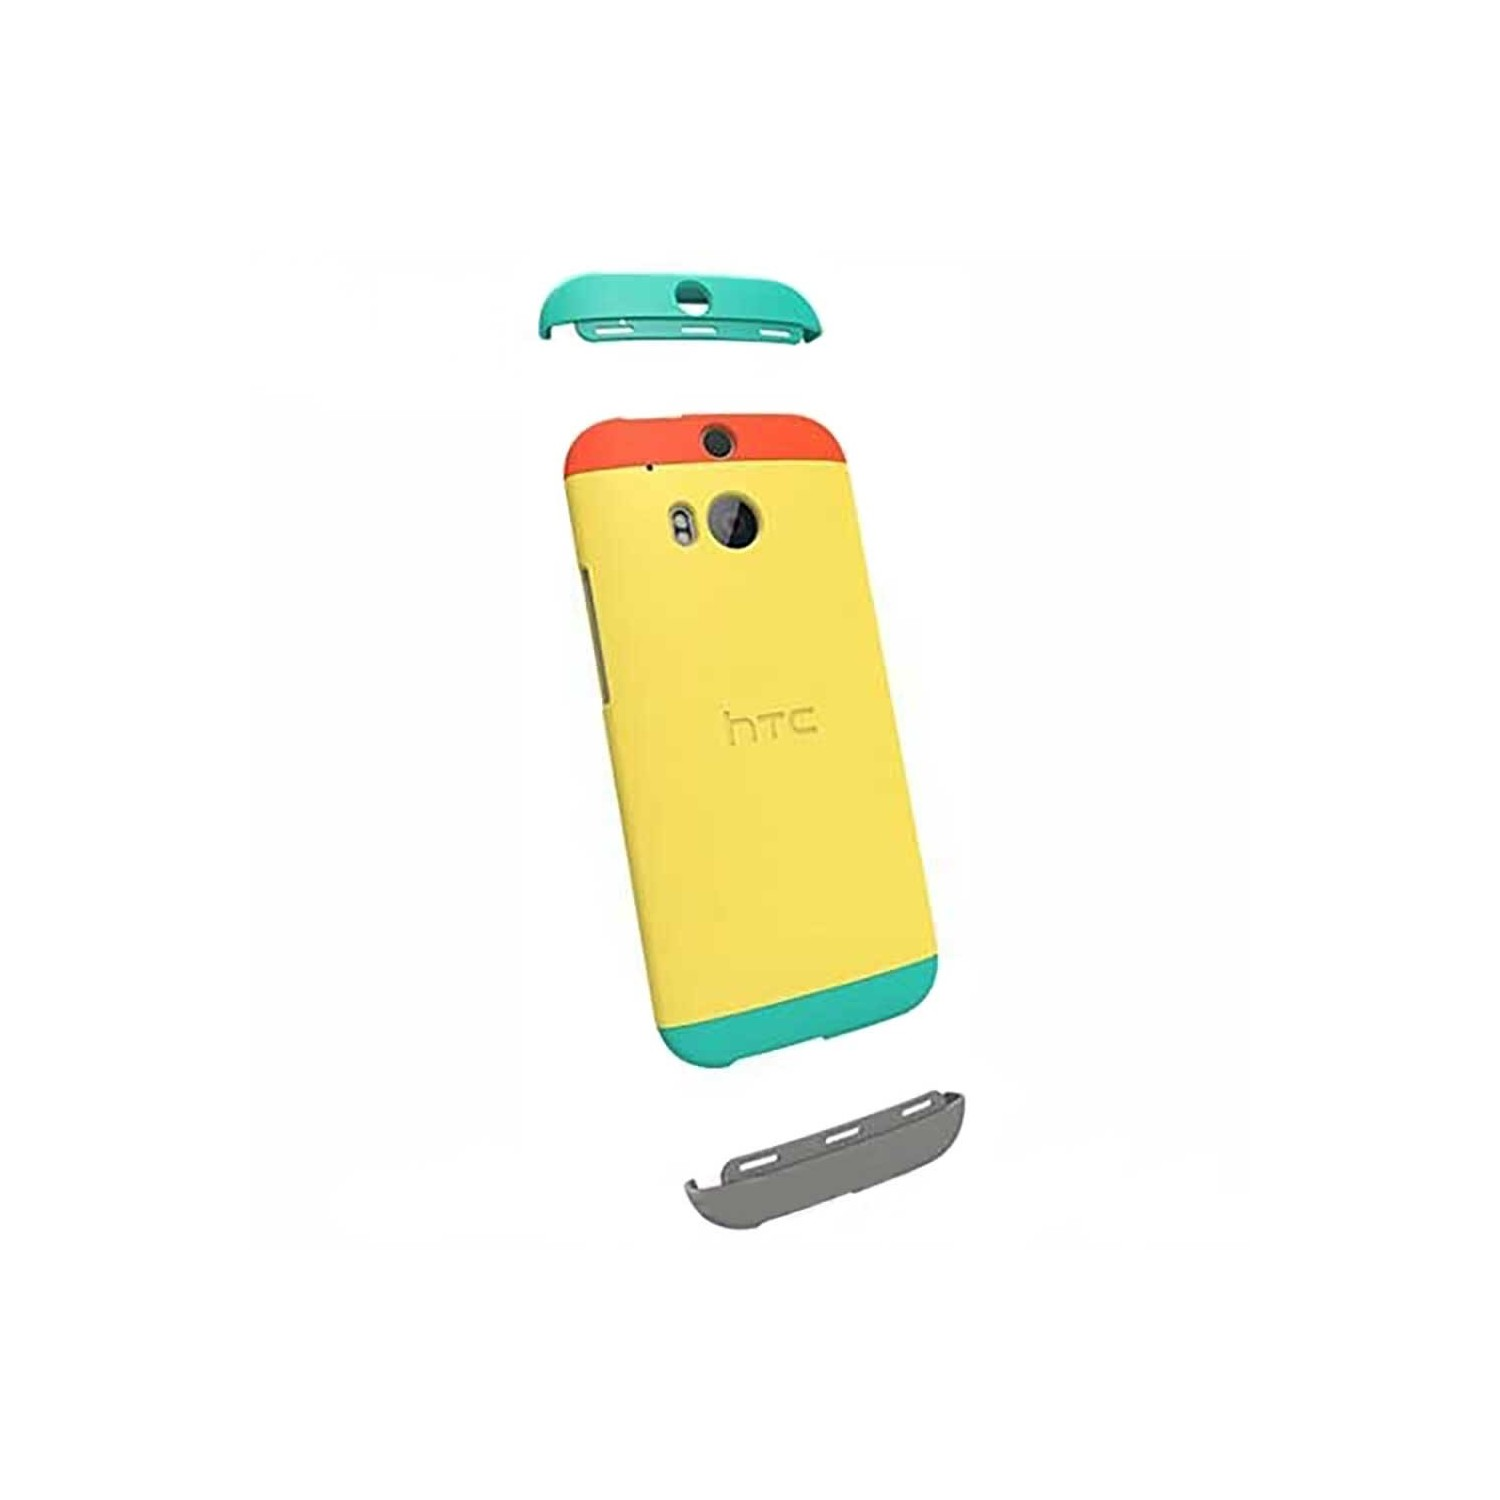 Case - Dip Case HTC OEM for HTC One M8 Yellow